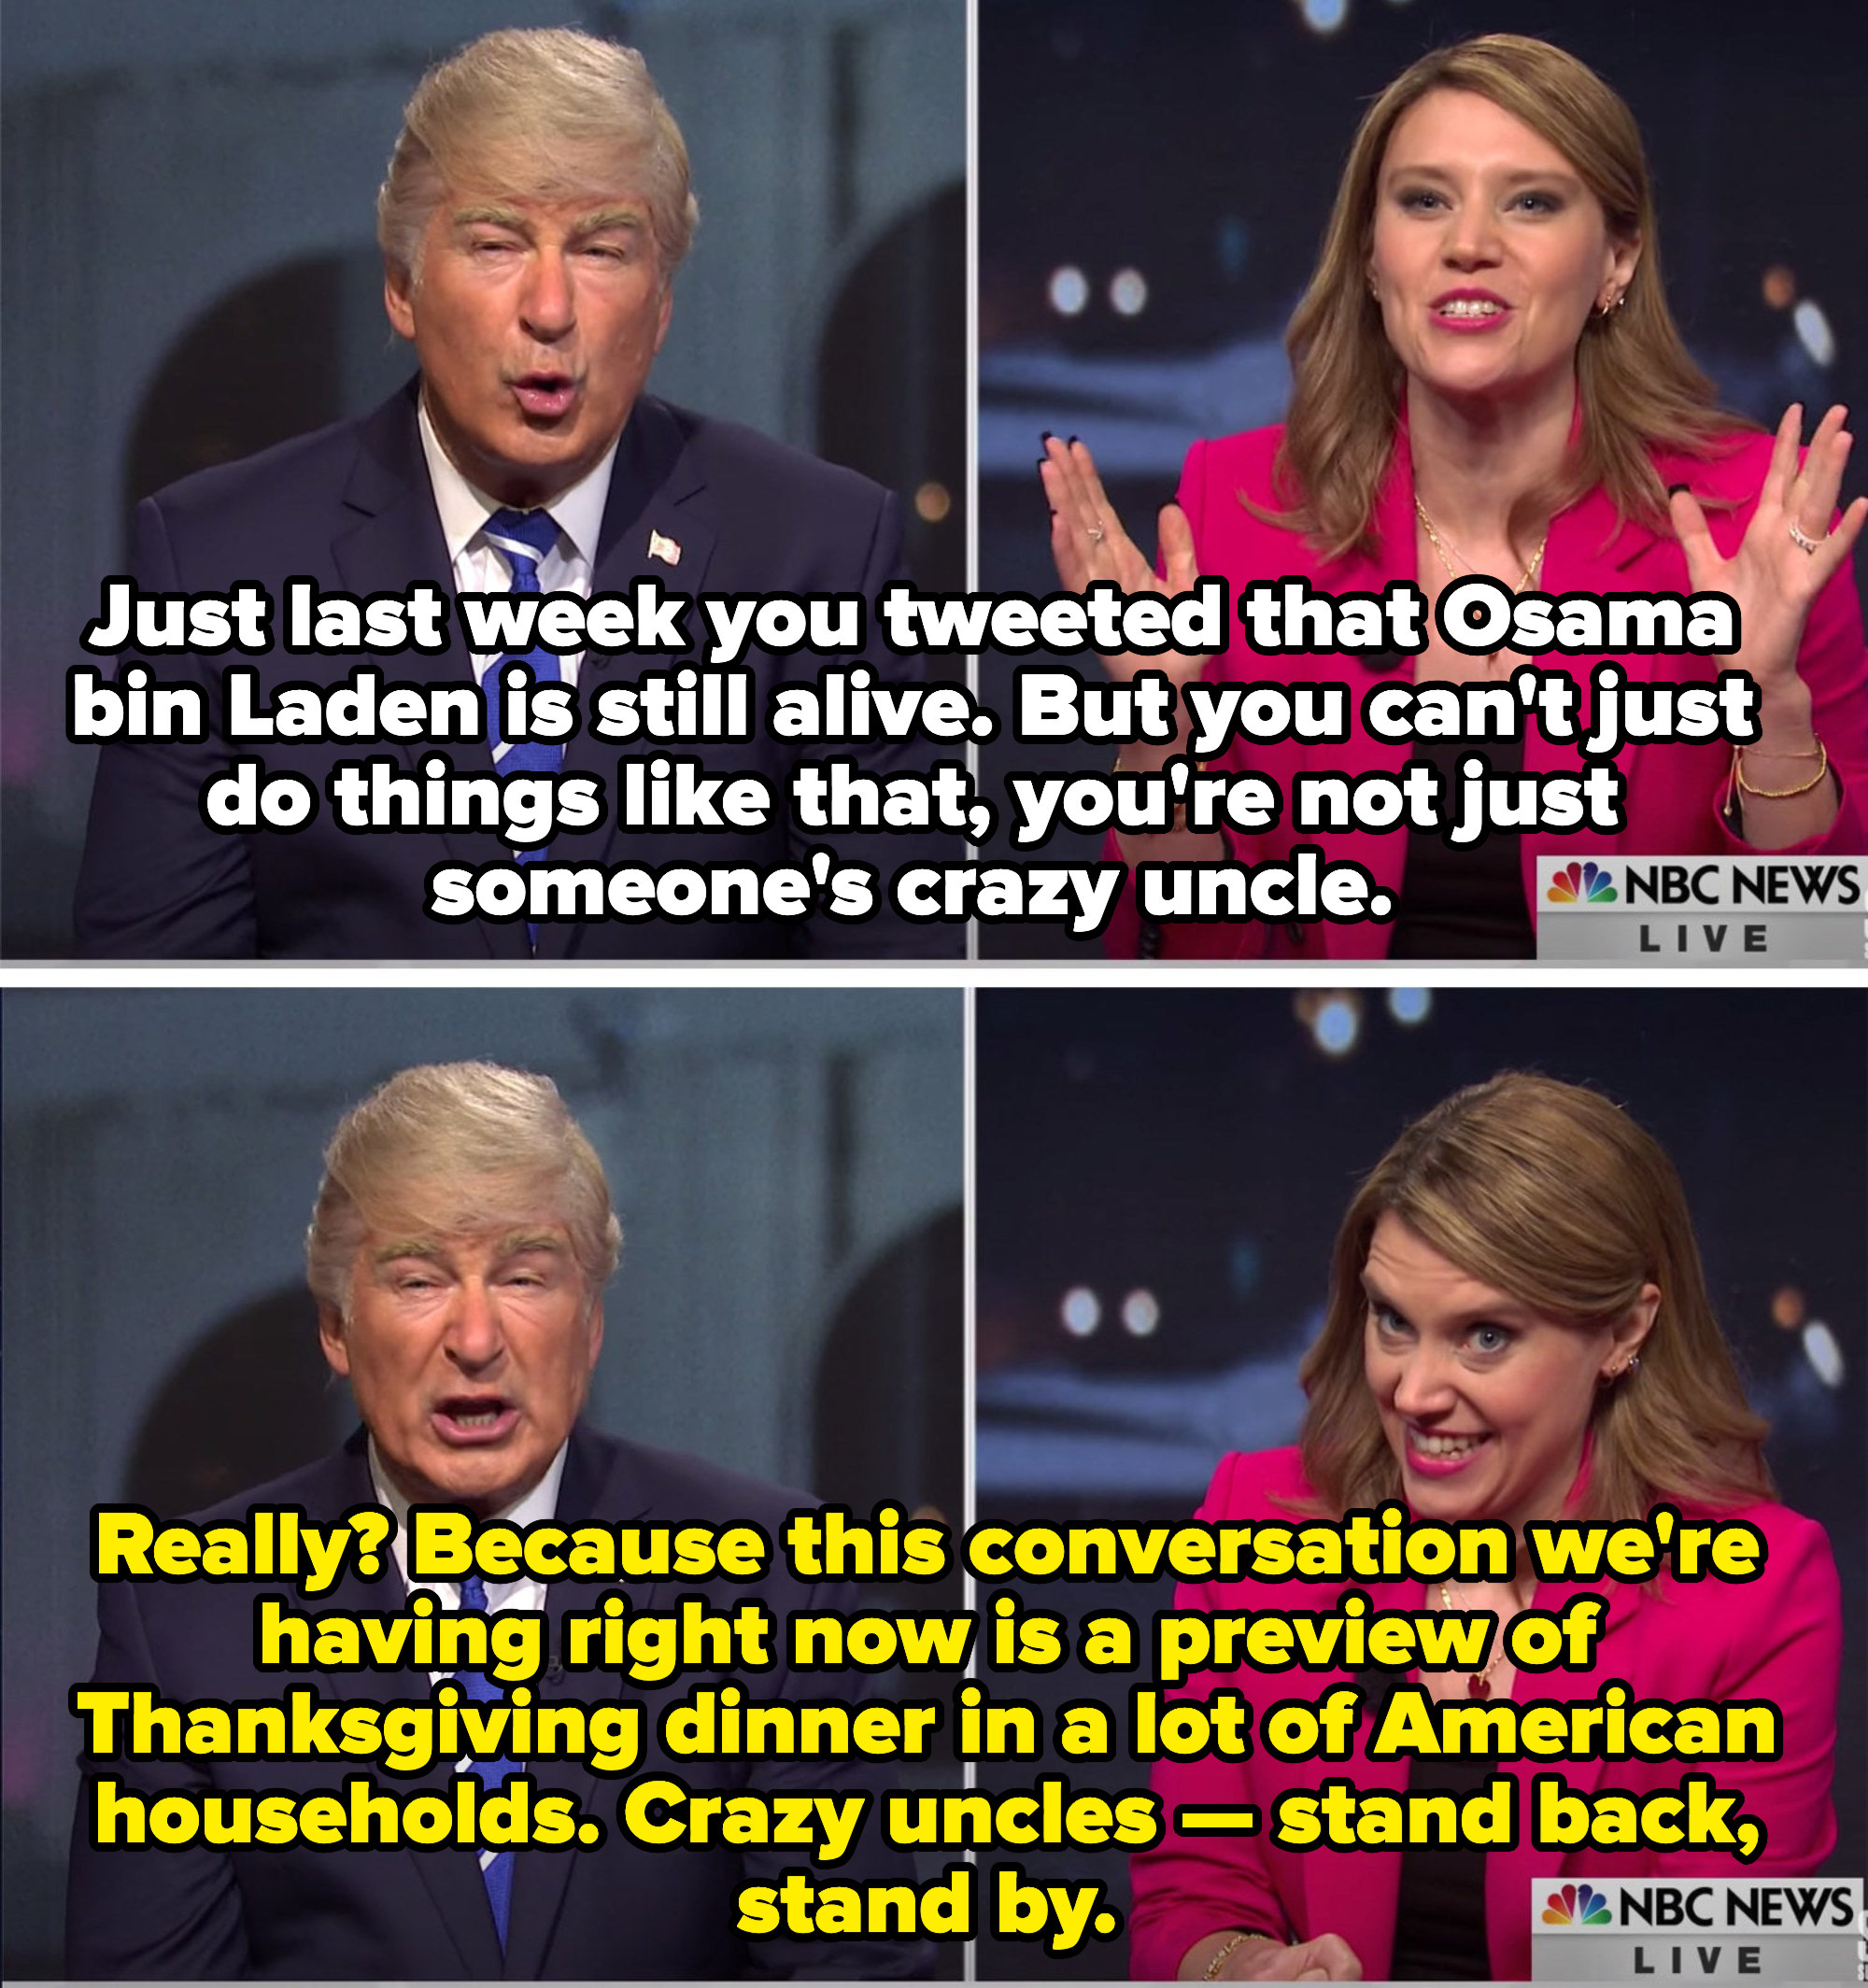 Savannah calling Trump a crazy uncle. Trump saying the conversation is like family at Thanksgiving, and telling crazy uncles to stand back and stand by.